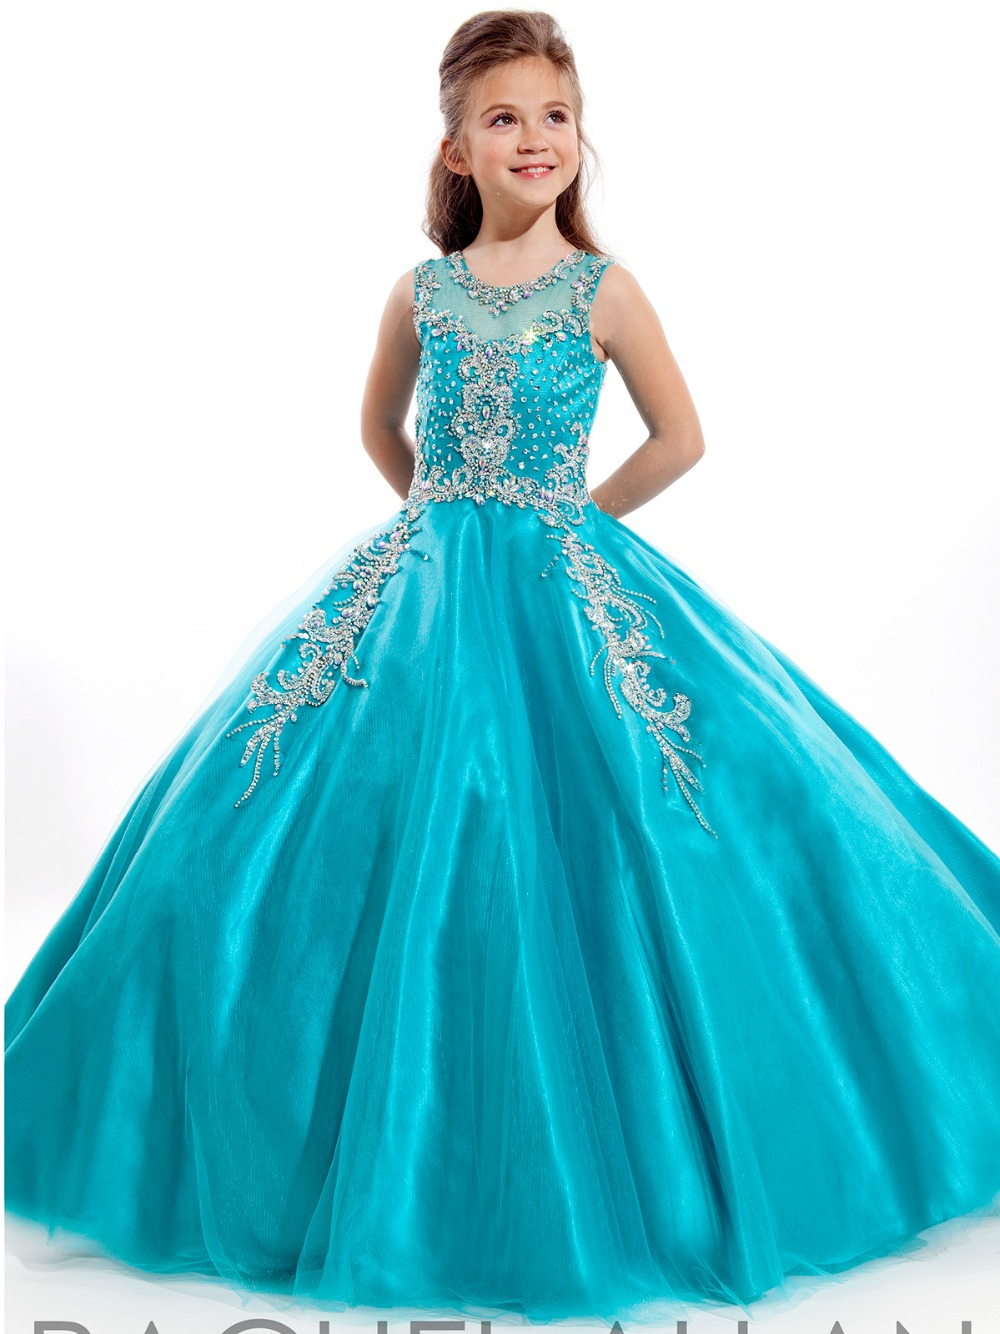 Outstanding Girls Party Dress Size 12 Image Collection - All Wedding ...